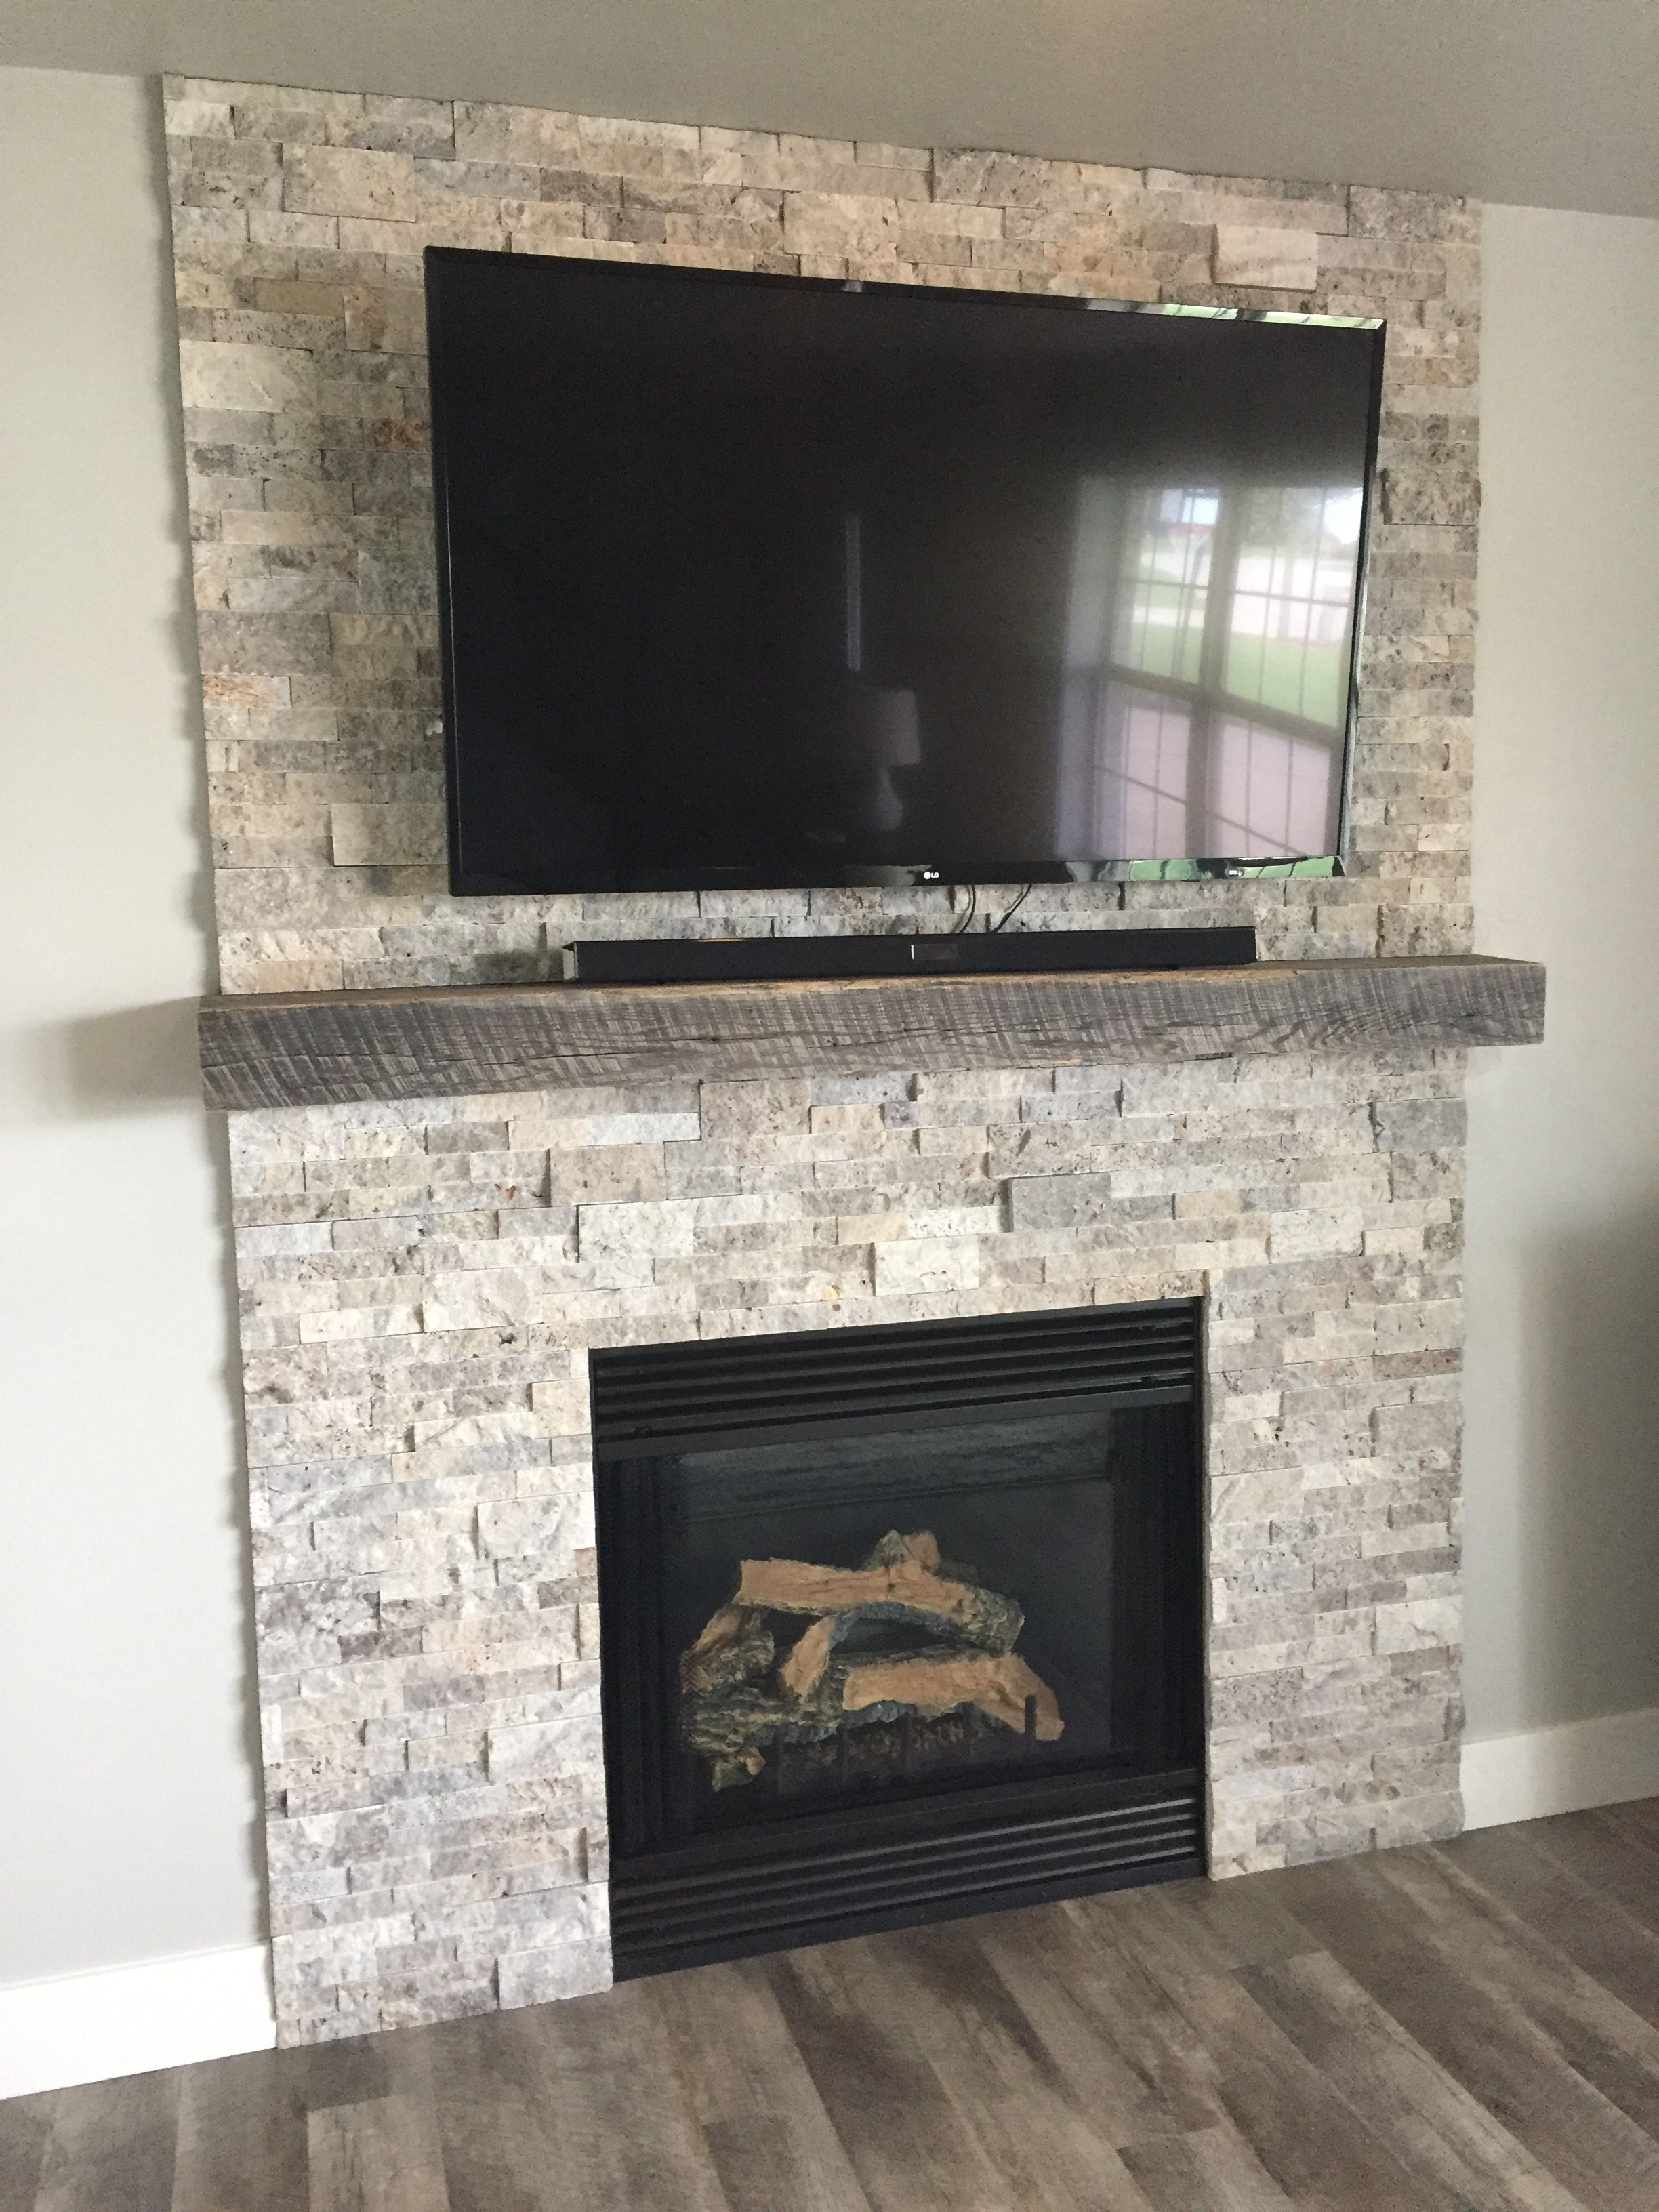 Cool Electric Fireplace Designs Ideas For Living Room34